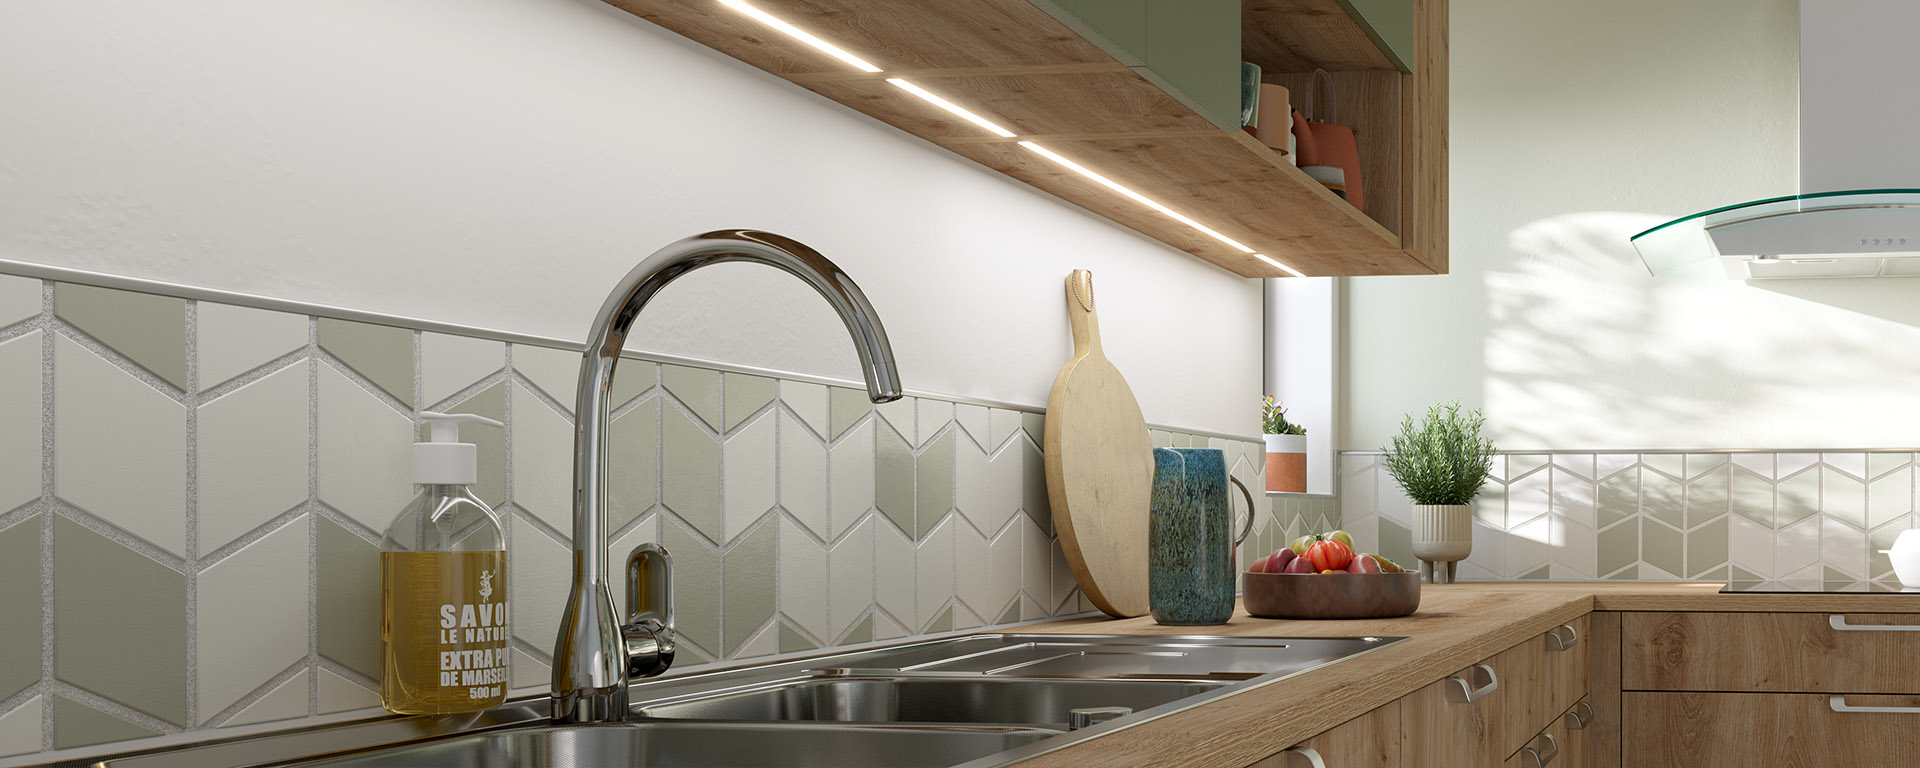 3D synthesis image of the sink area of a wood and green kitchen